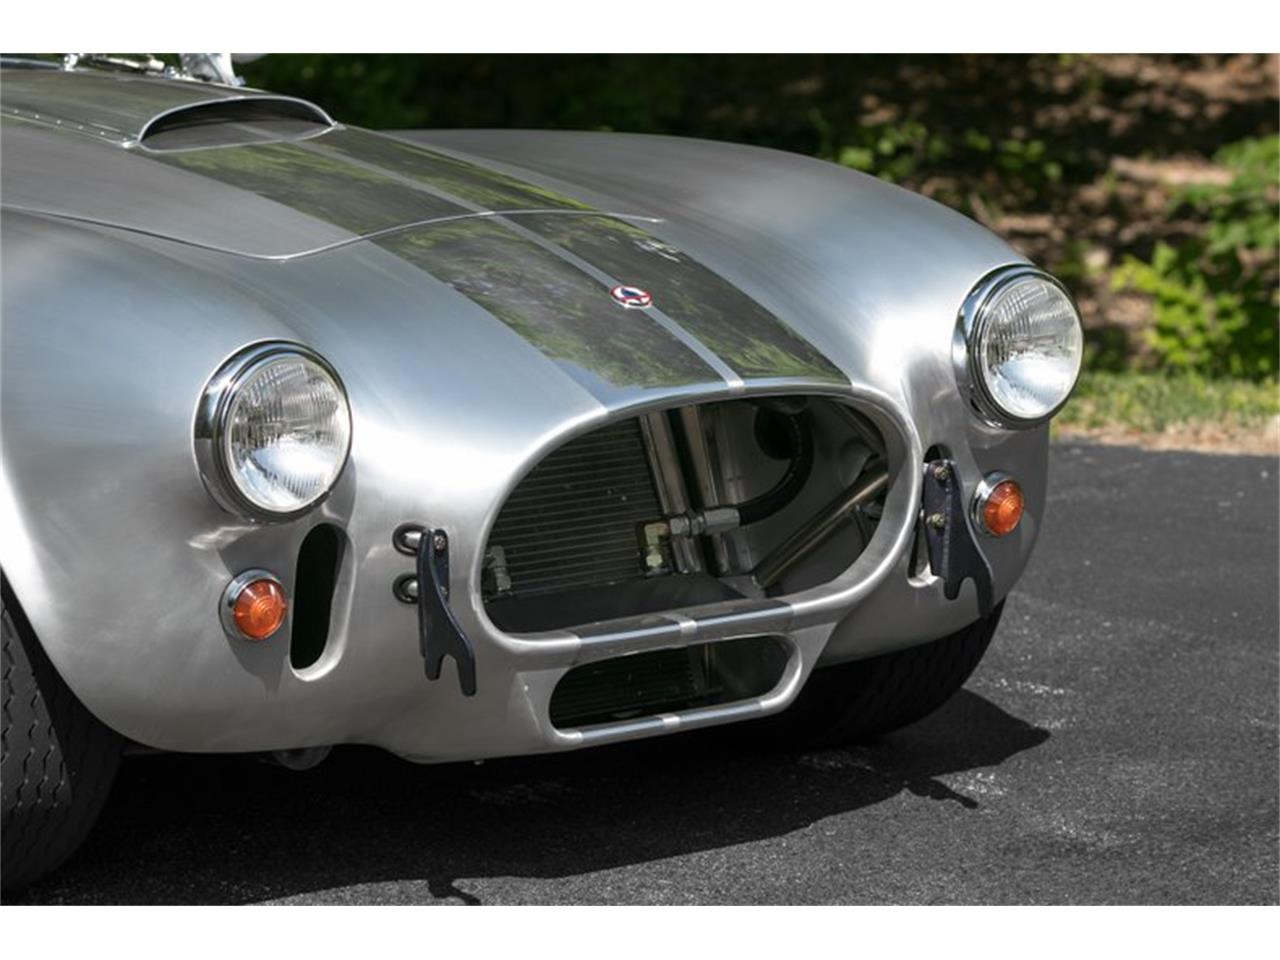 Large Picture of Classic '65 Kirkham Cobra located in St. Charles Missouri Offered by Fast Lane Classic Cars Inc. - OAK6